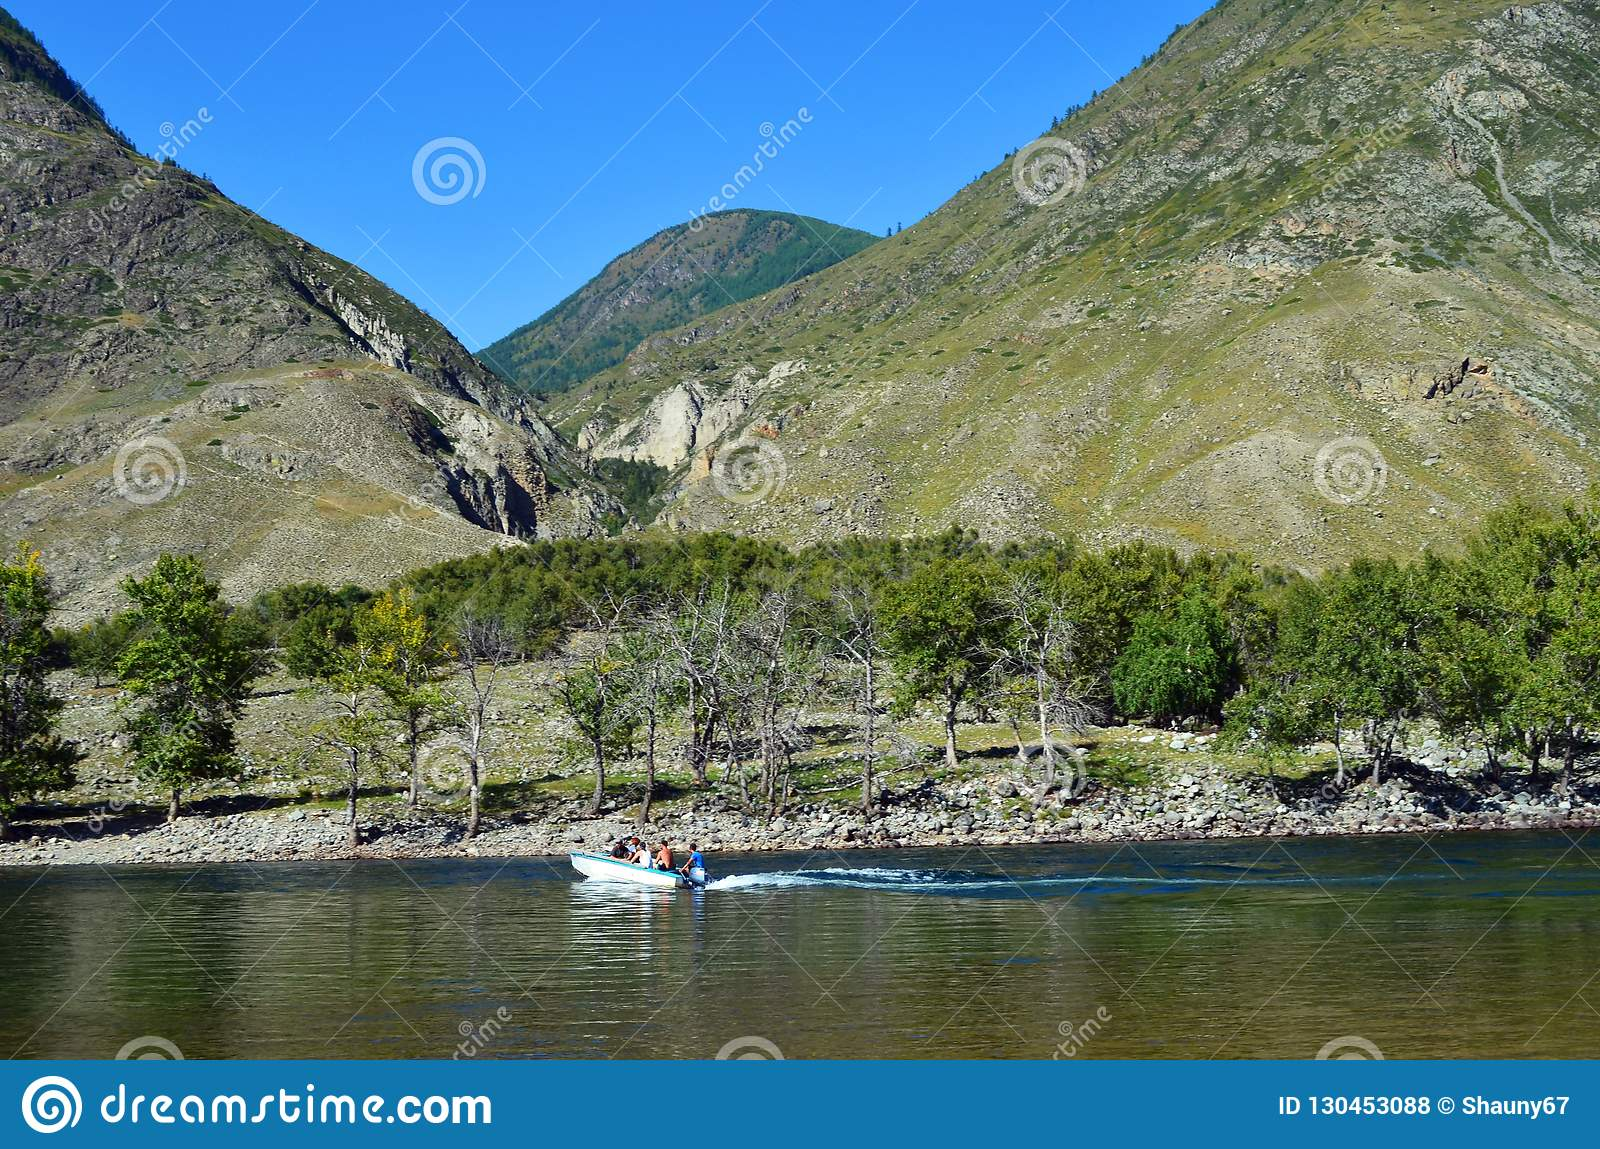 Mountain Altai. Crossing the Chulyshman river by motor boat